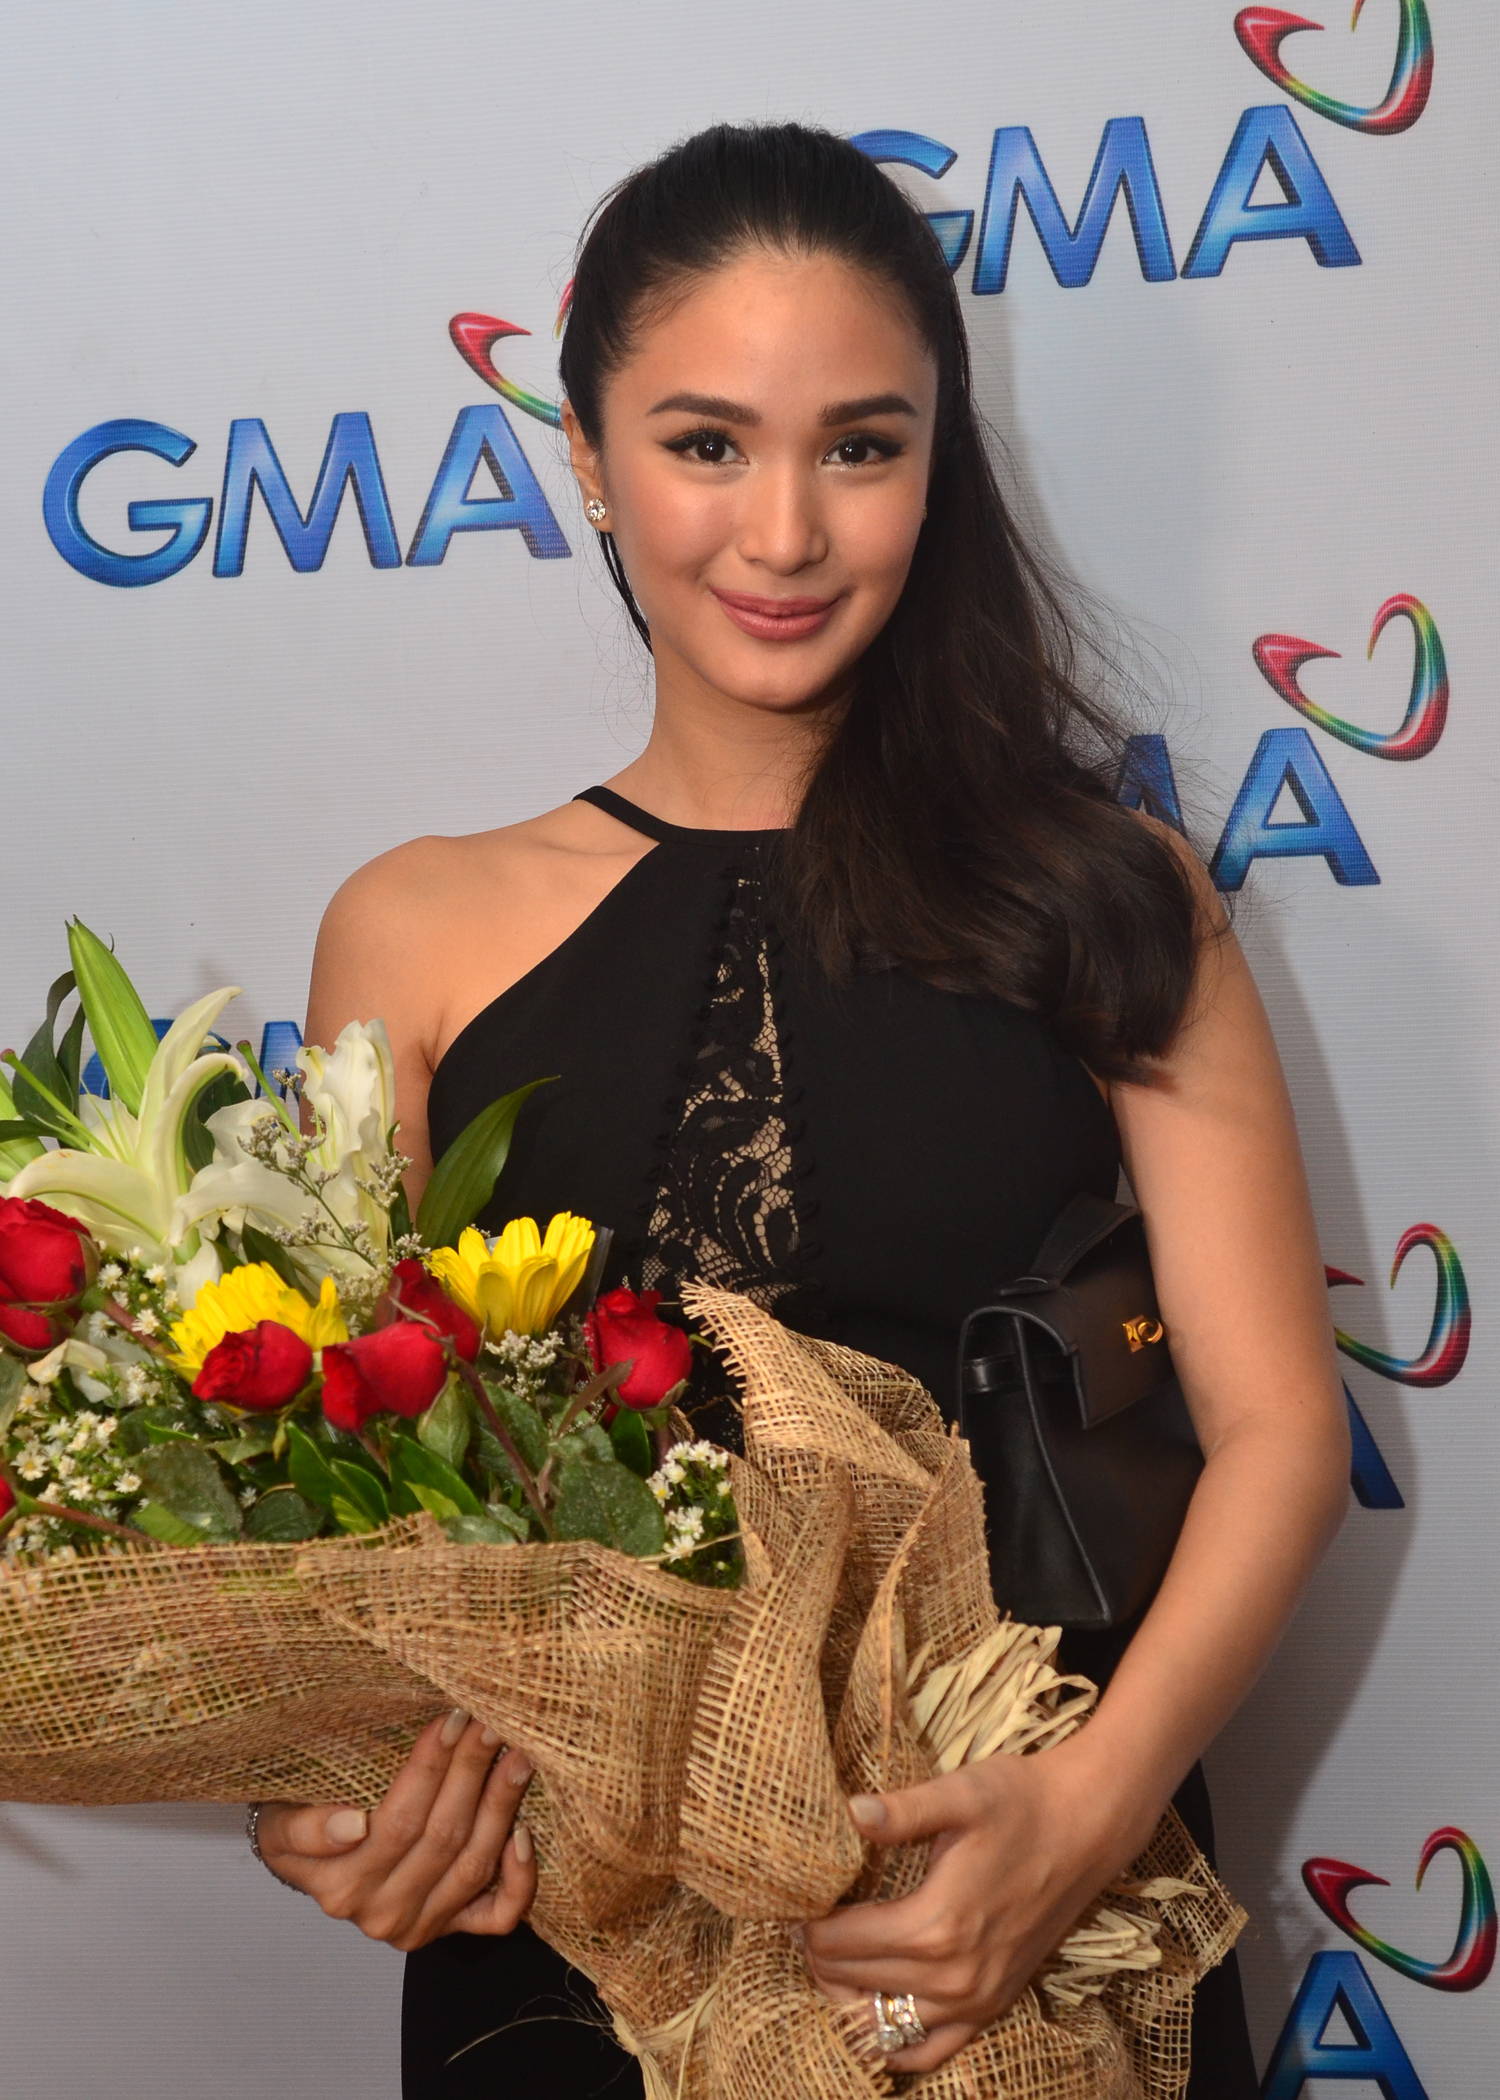 Kapuso actress Heart Evangelista-Escudero. (Contributed photo)